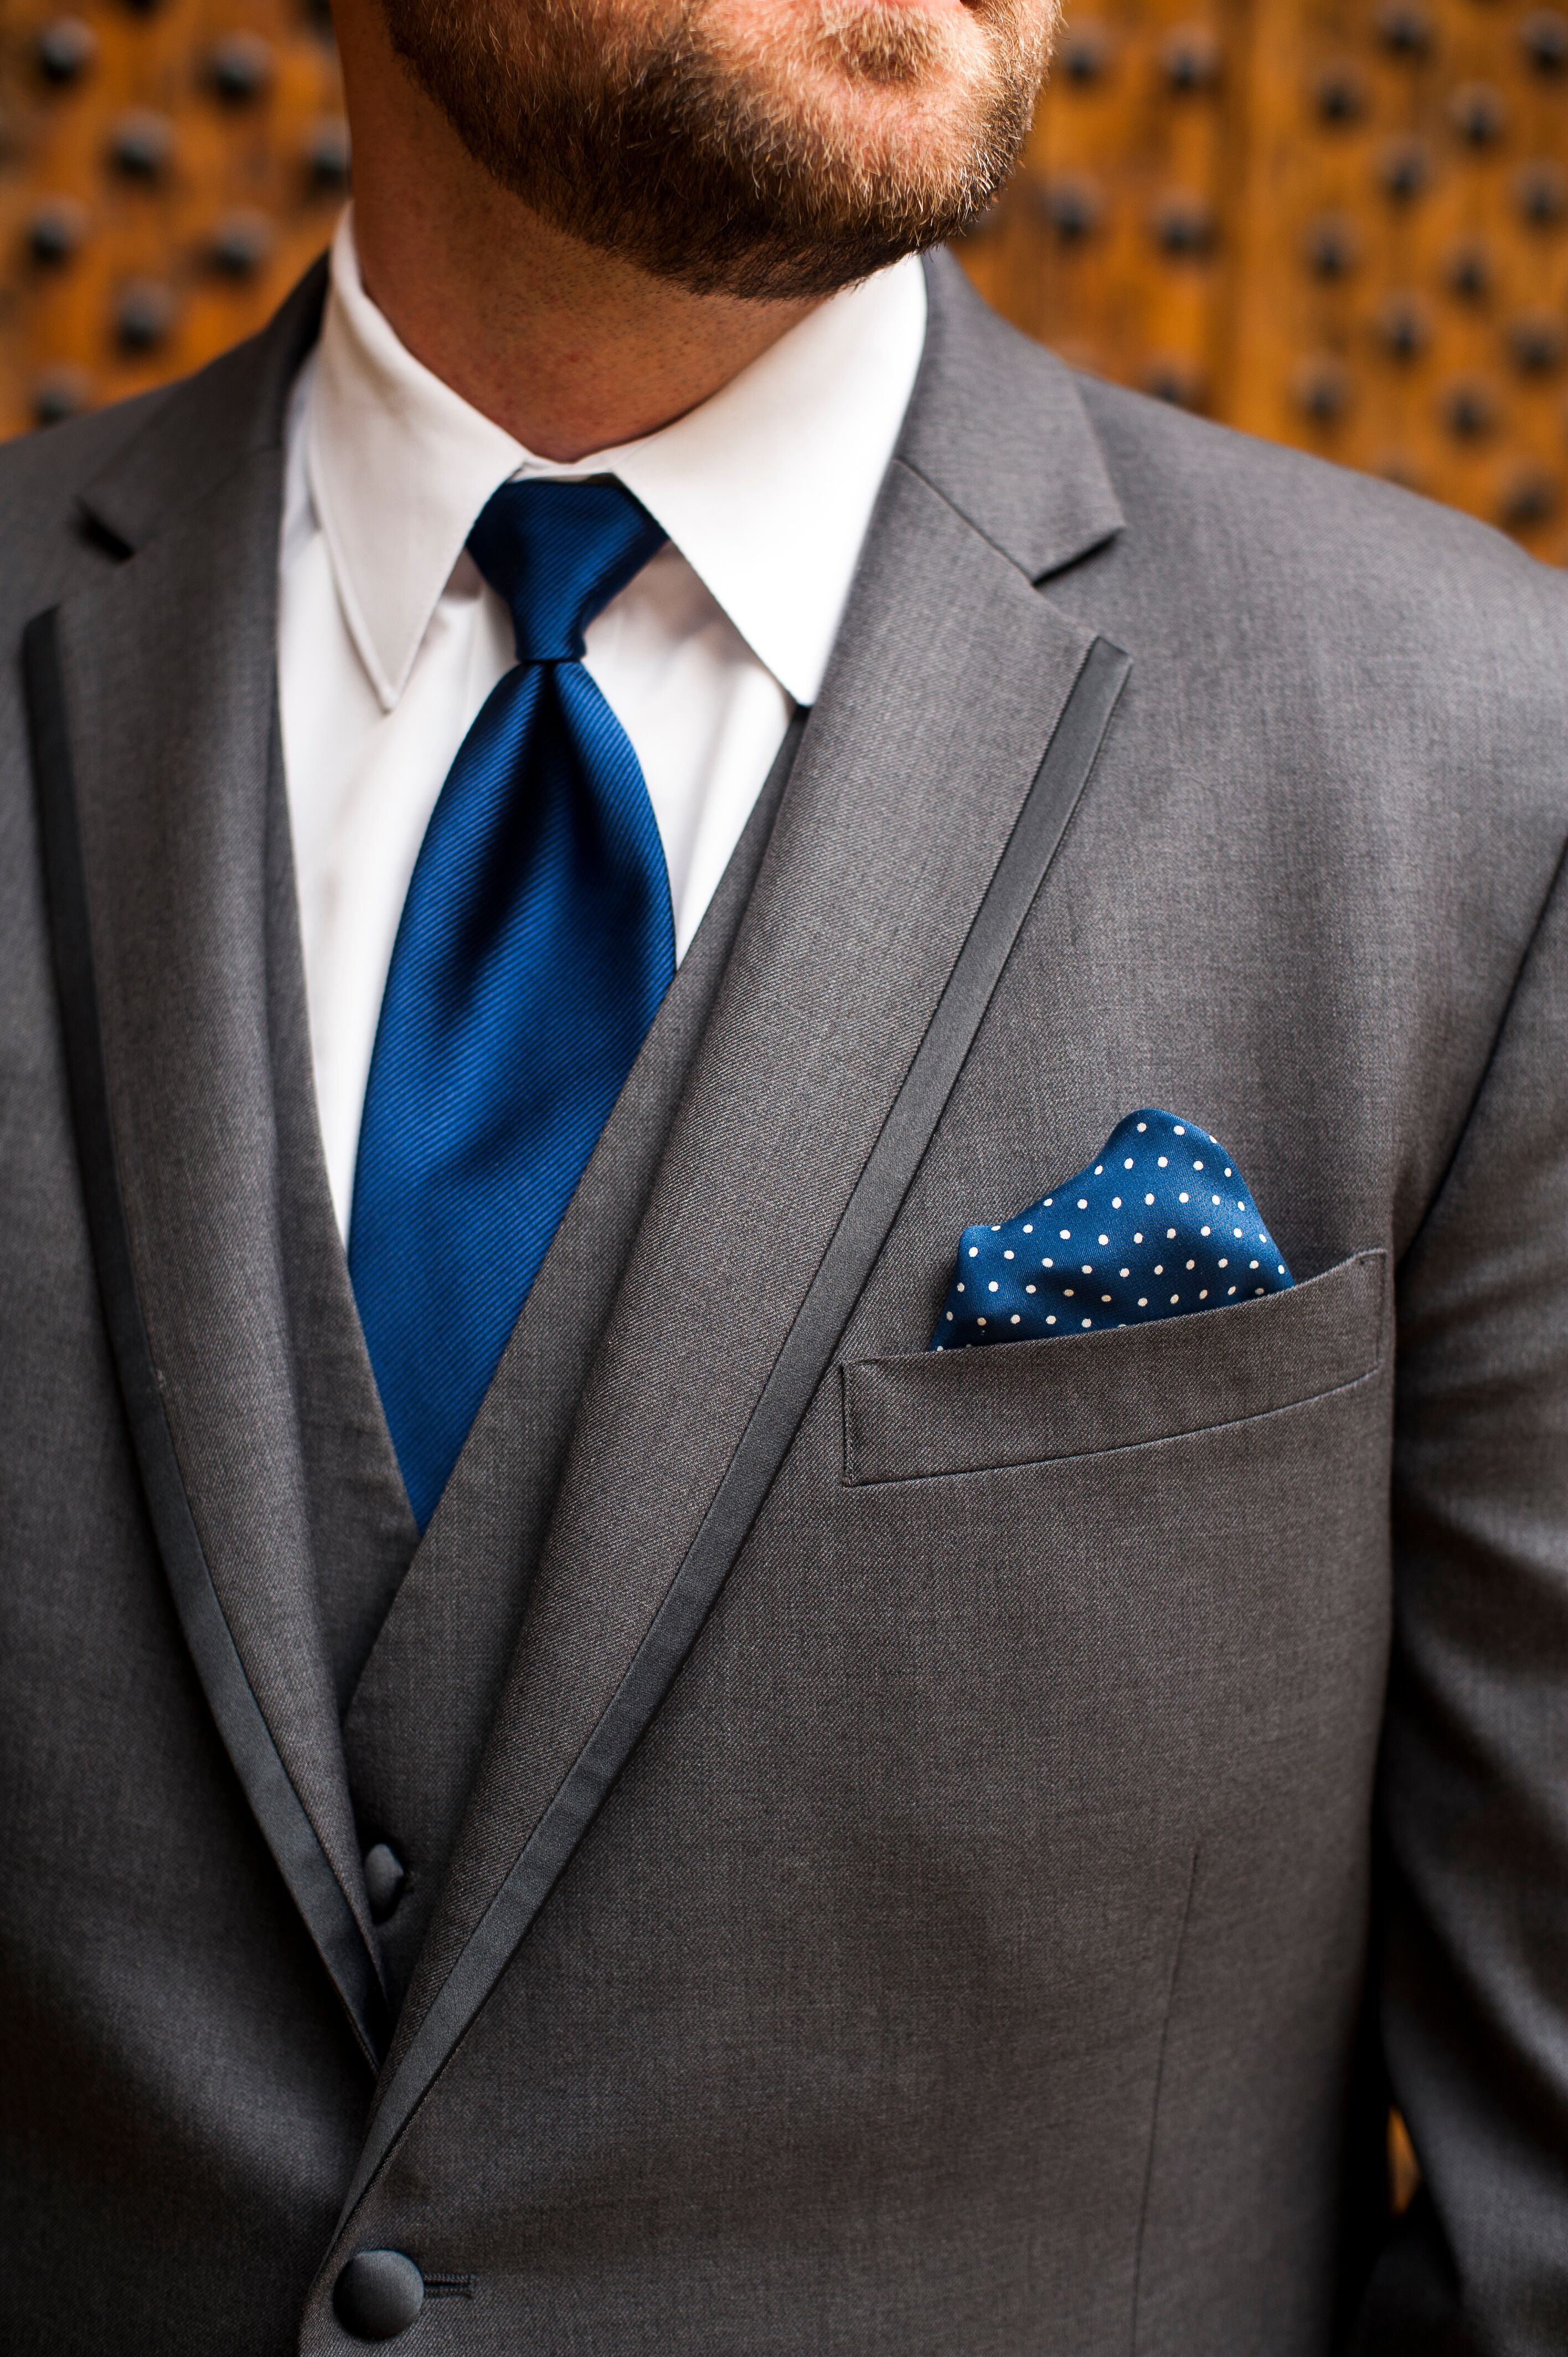 Gray Tuxedo With Navy Tie And Pocket Square